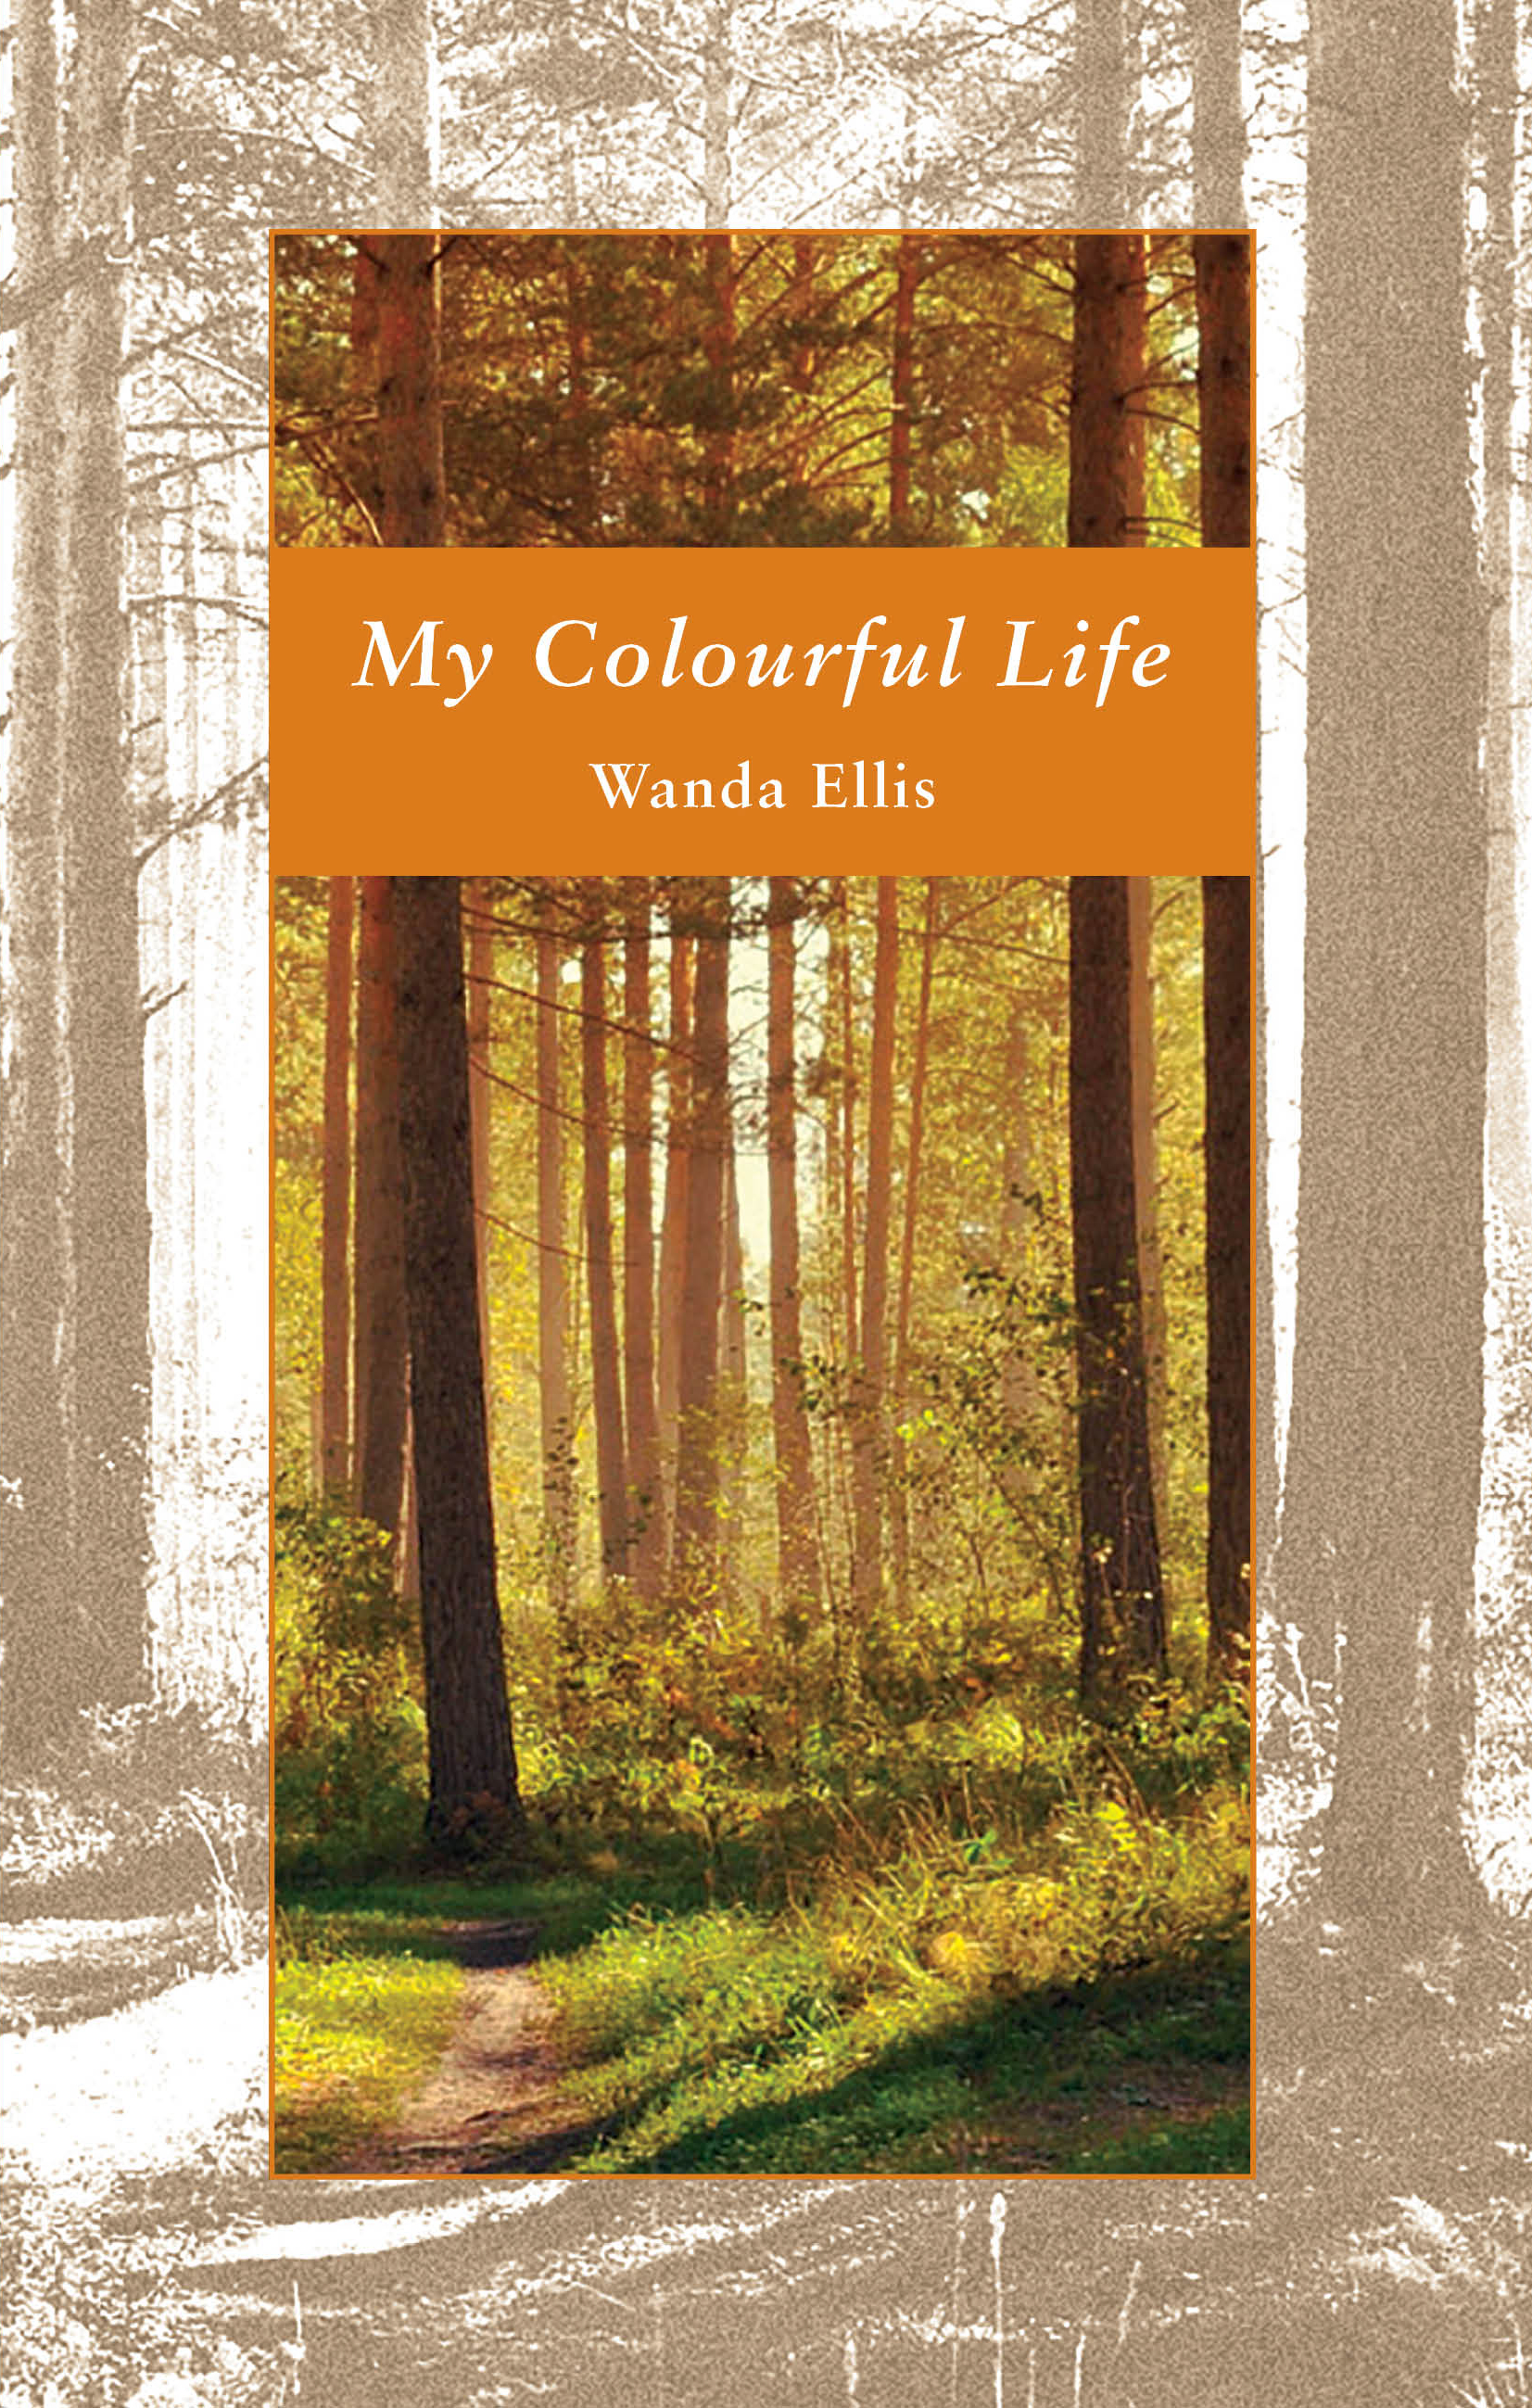 My Colourful Life | Wanda Ellis